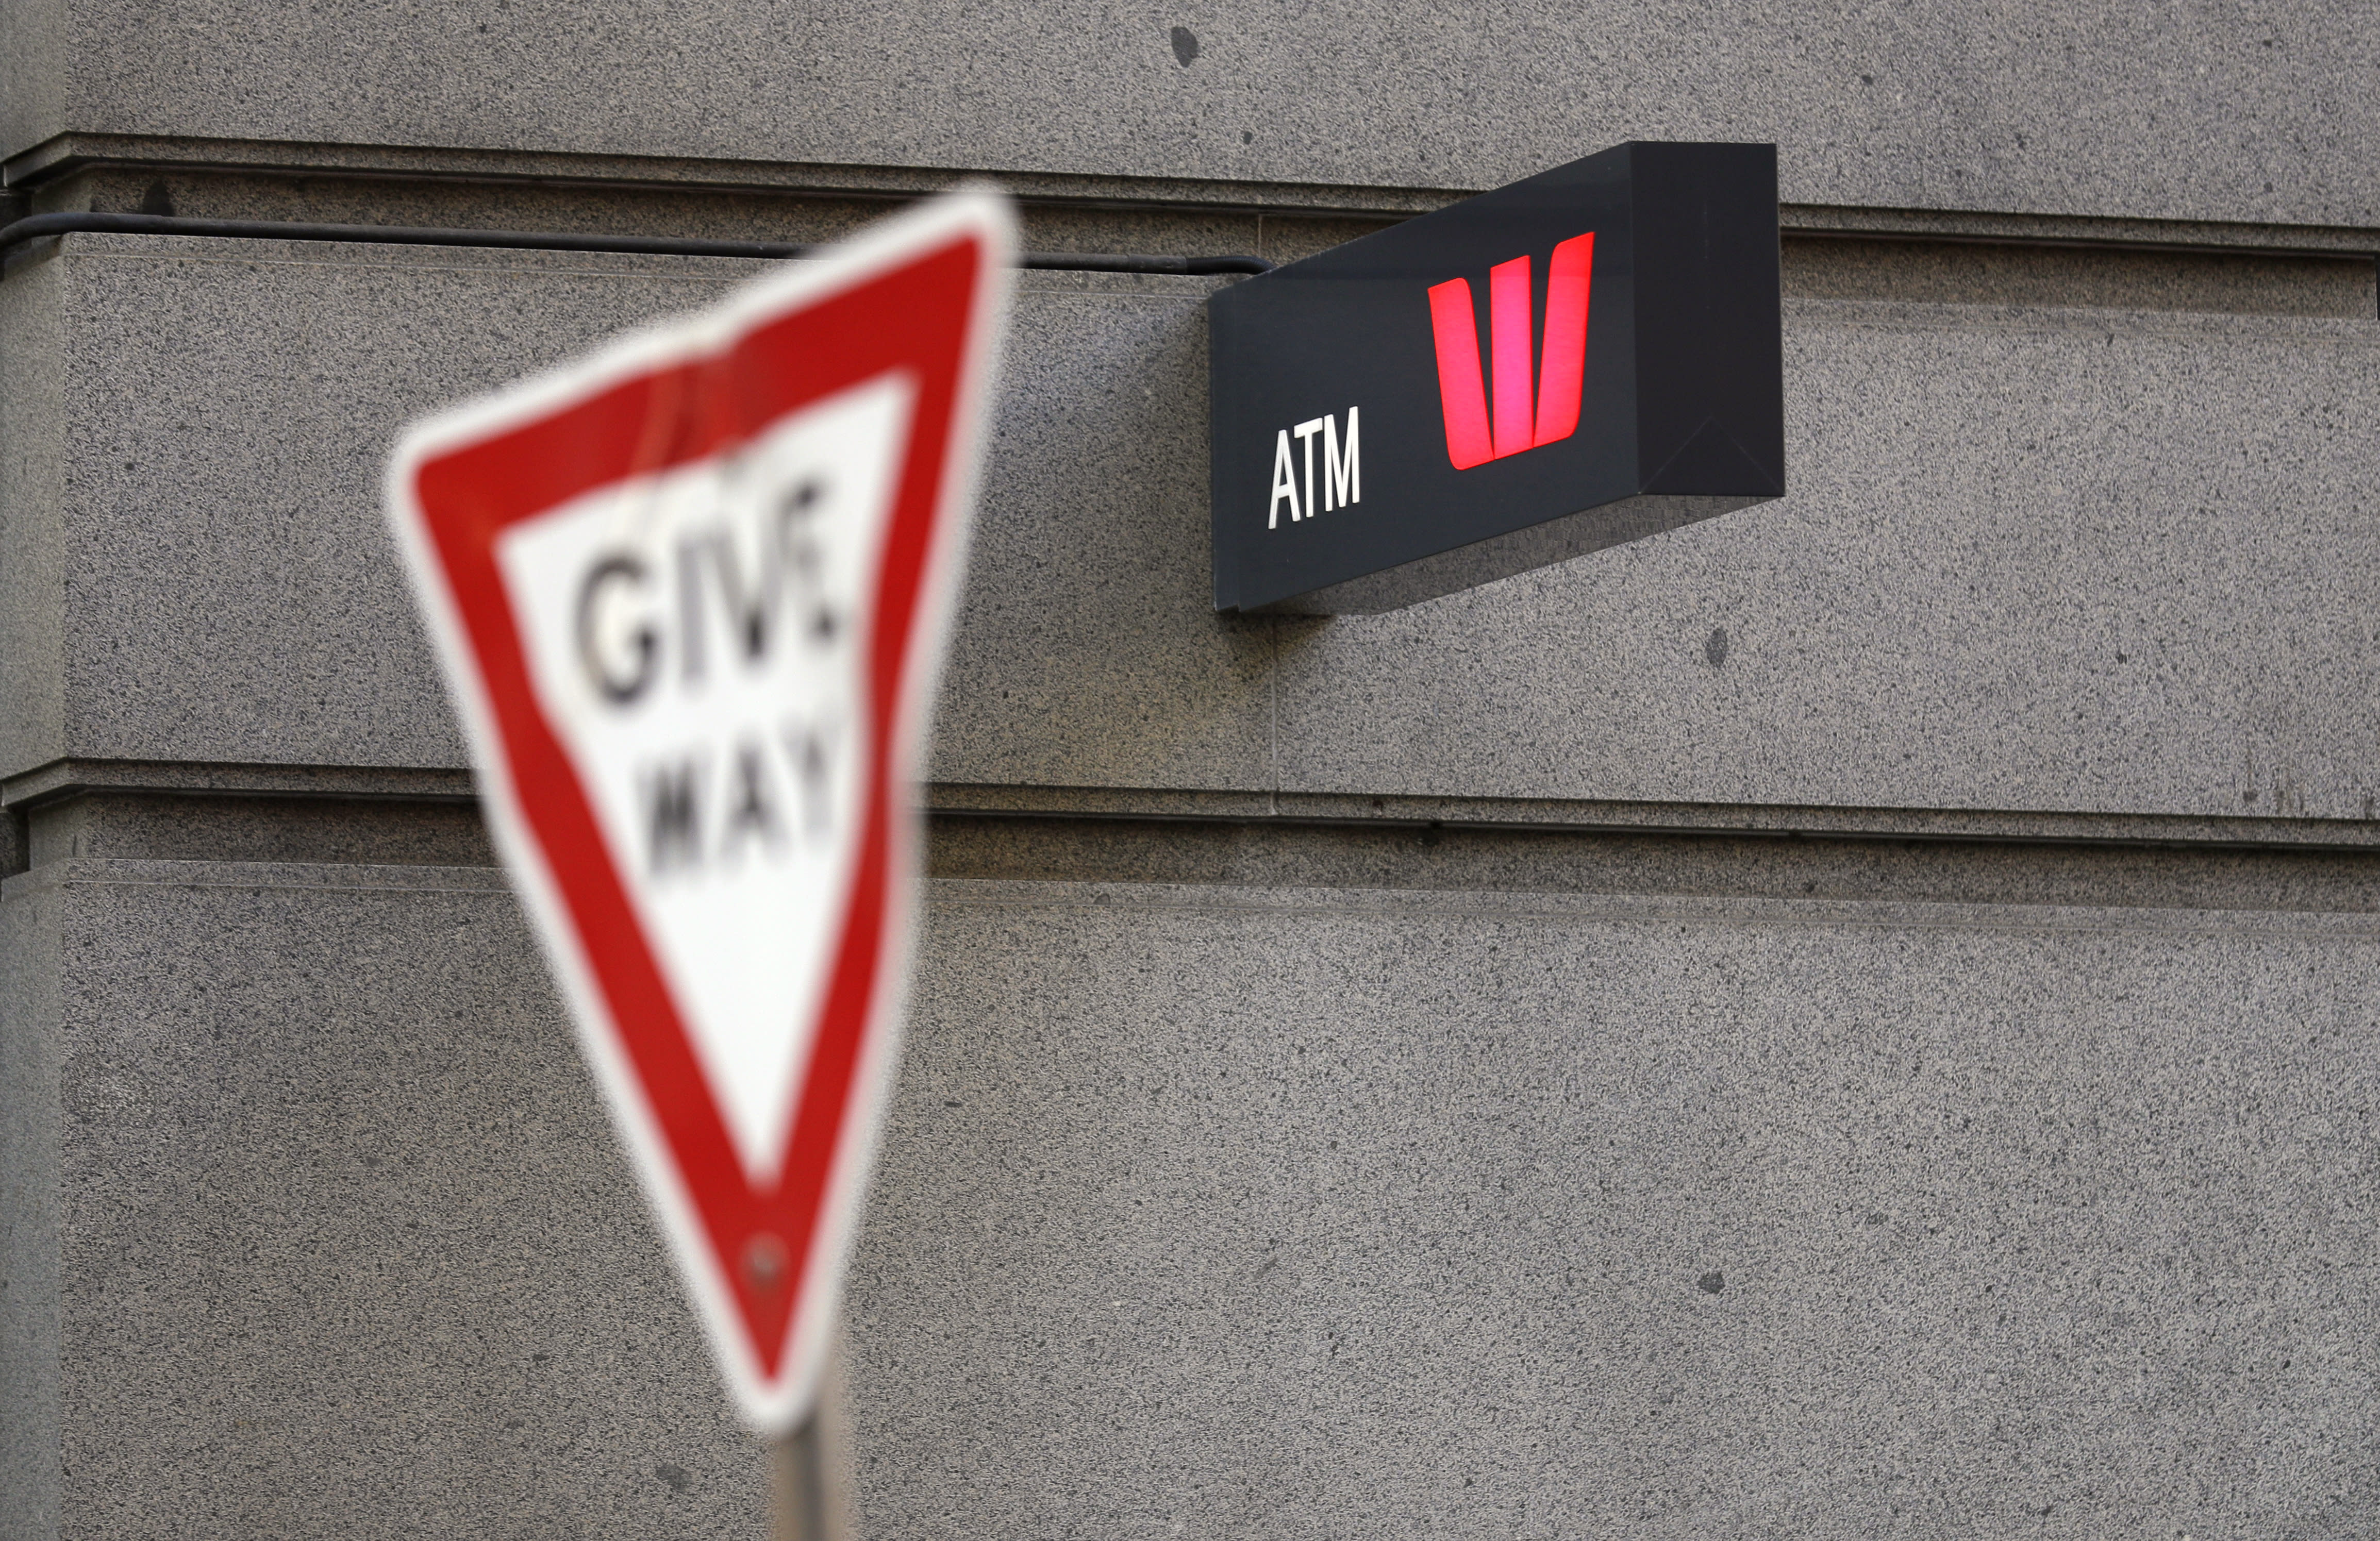 A Westpac bank ATM sign is posted on a wall in Sydney, Thursday, Sept. 24, 2020. Westpac, Australia's second-largest bank, agreed to pay a 1.3 billion Australian dollar ($919 million) fine for breaches of anti-money laundering and counterterrorism financing laws, the largest ever civil penalty in Australia, a financial crime regulator said. (AP Photo/Rick Rycroft)